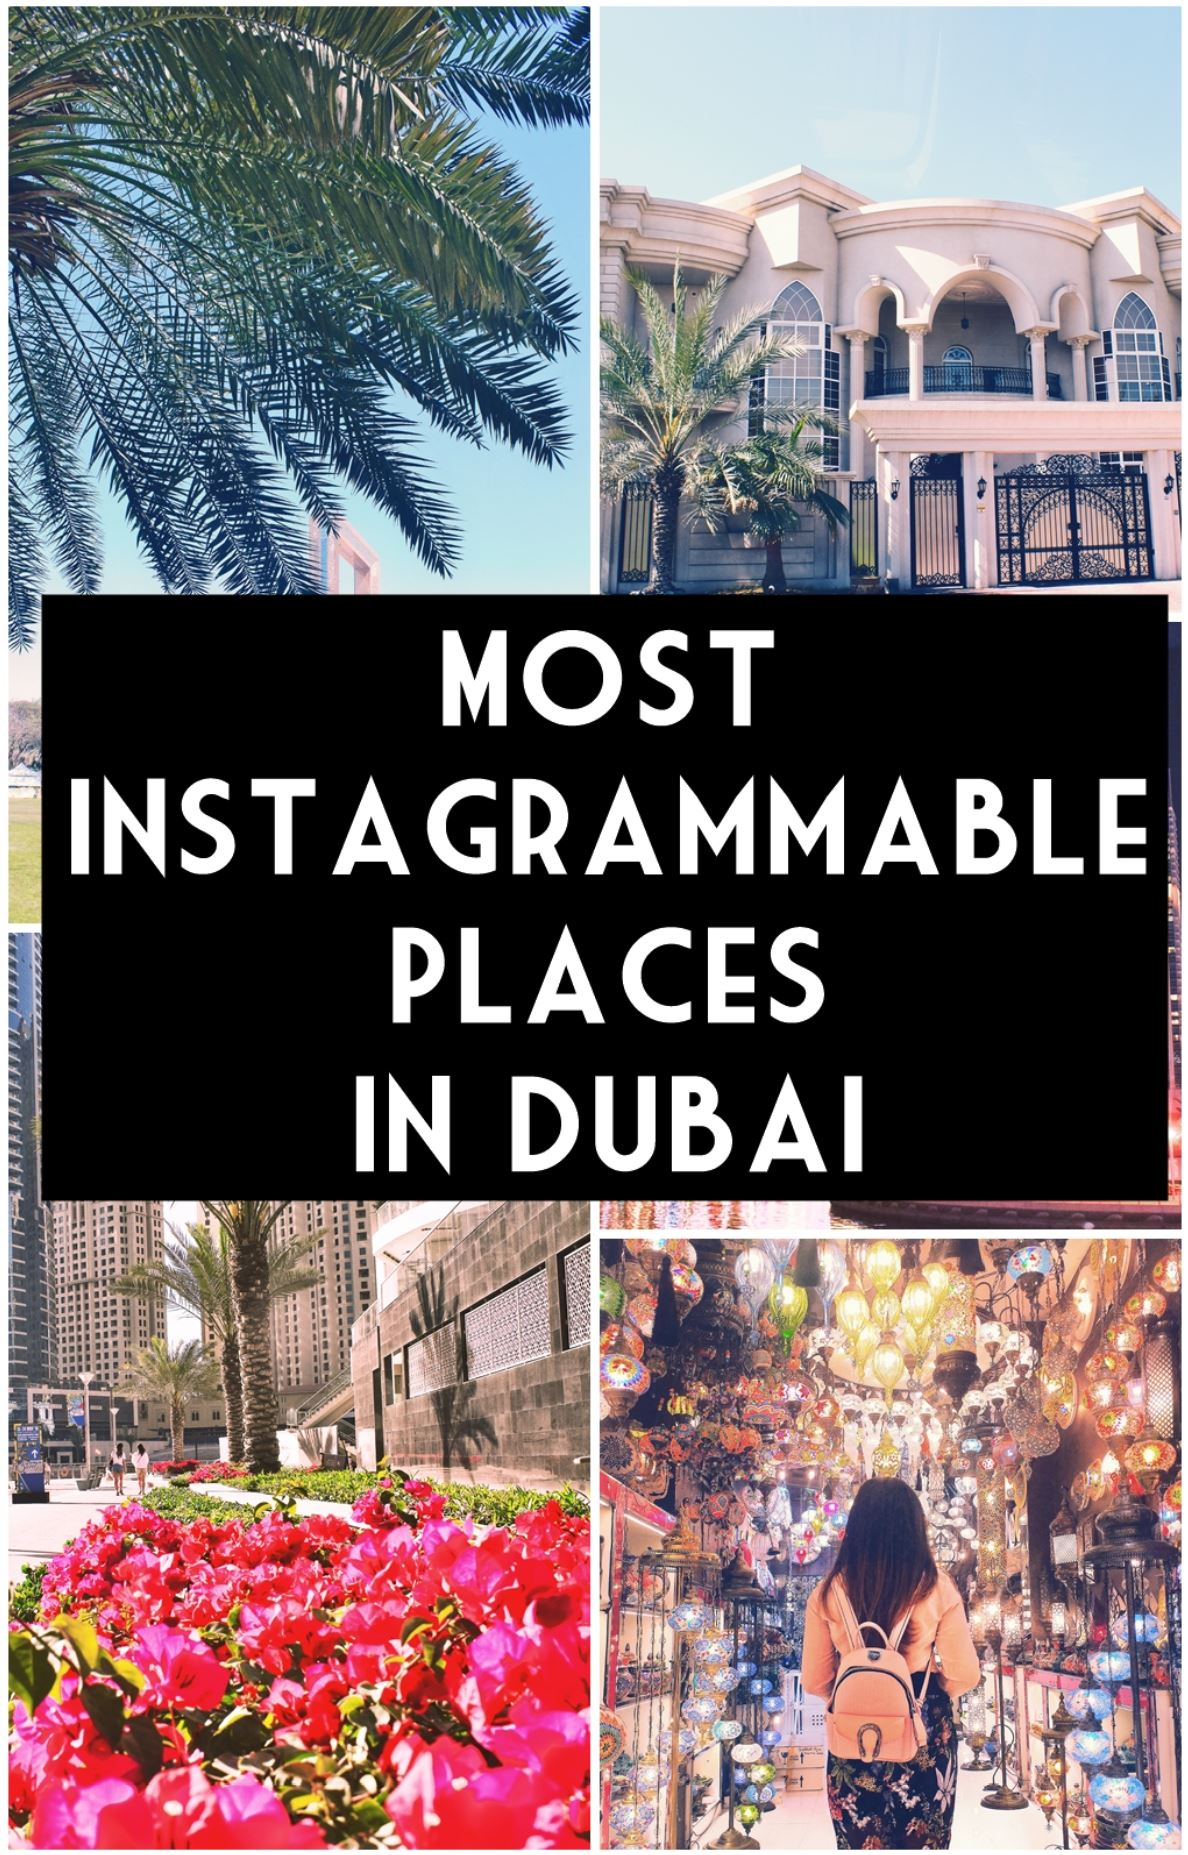 most instagrammable places in dubai 1